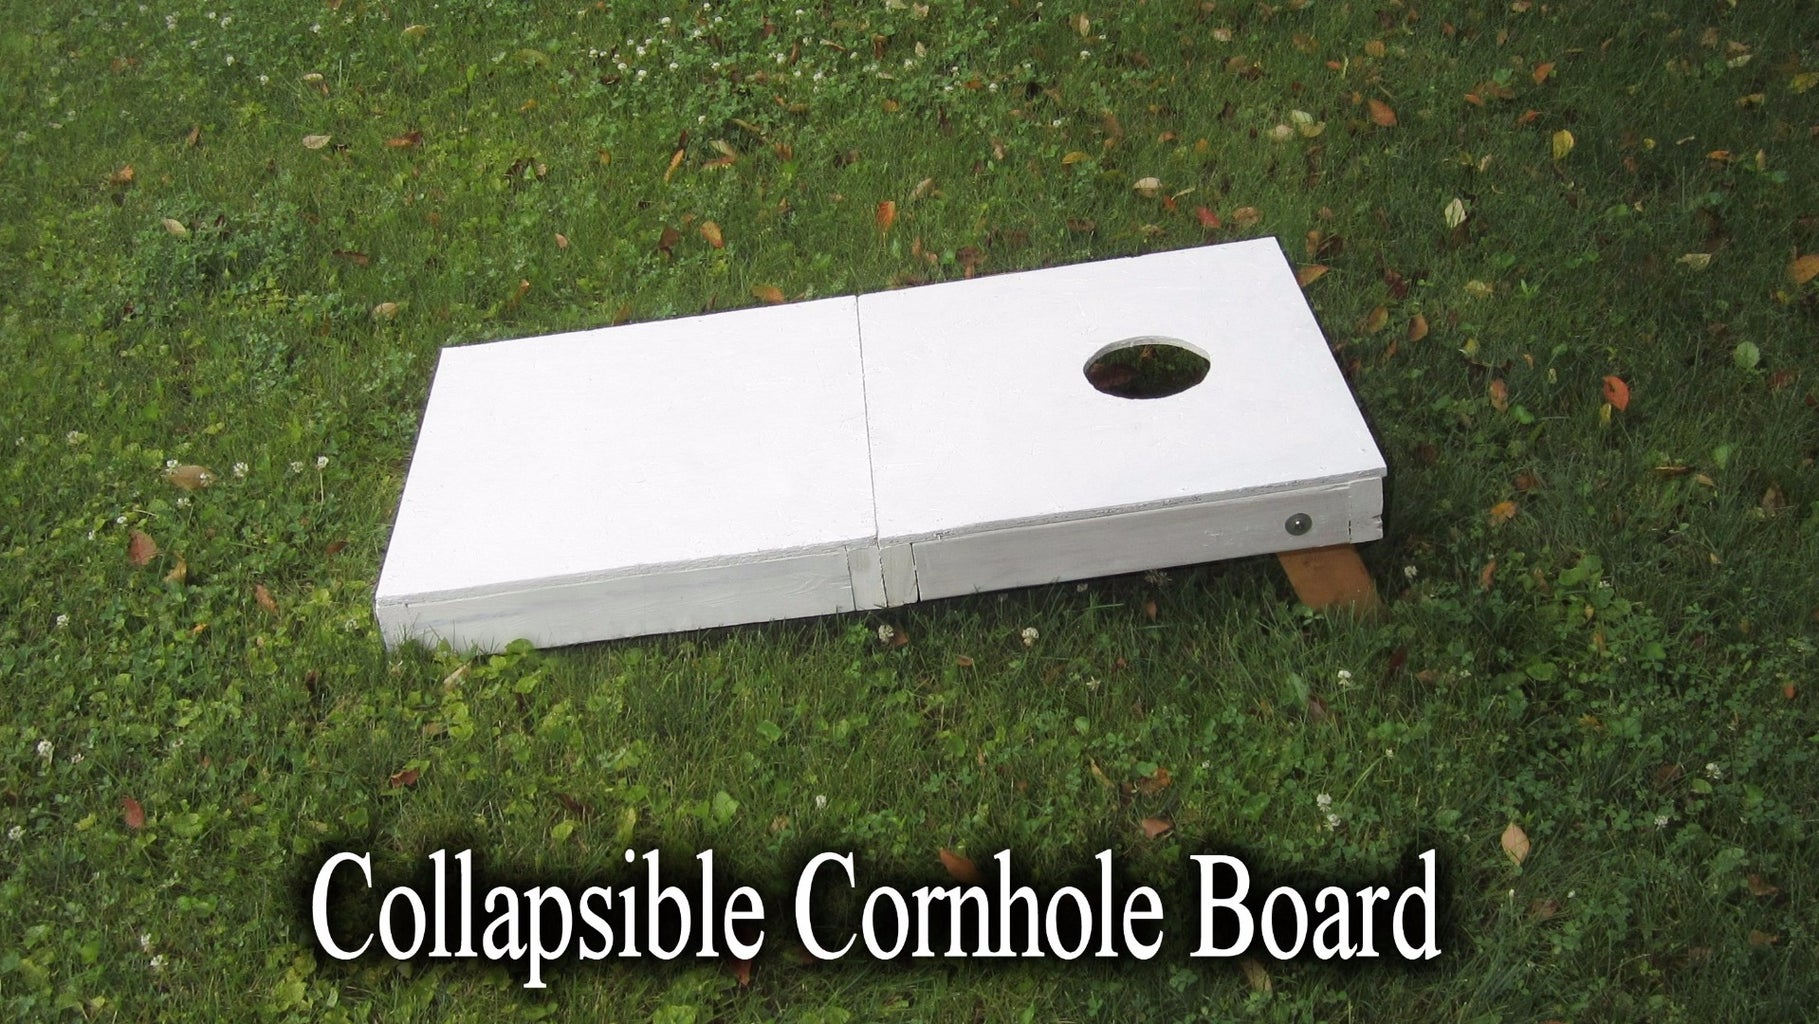 Collapsible Cornhole Boards